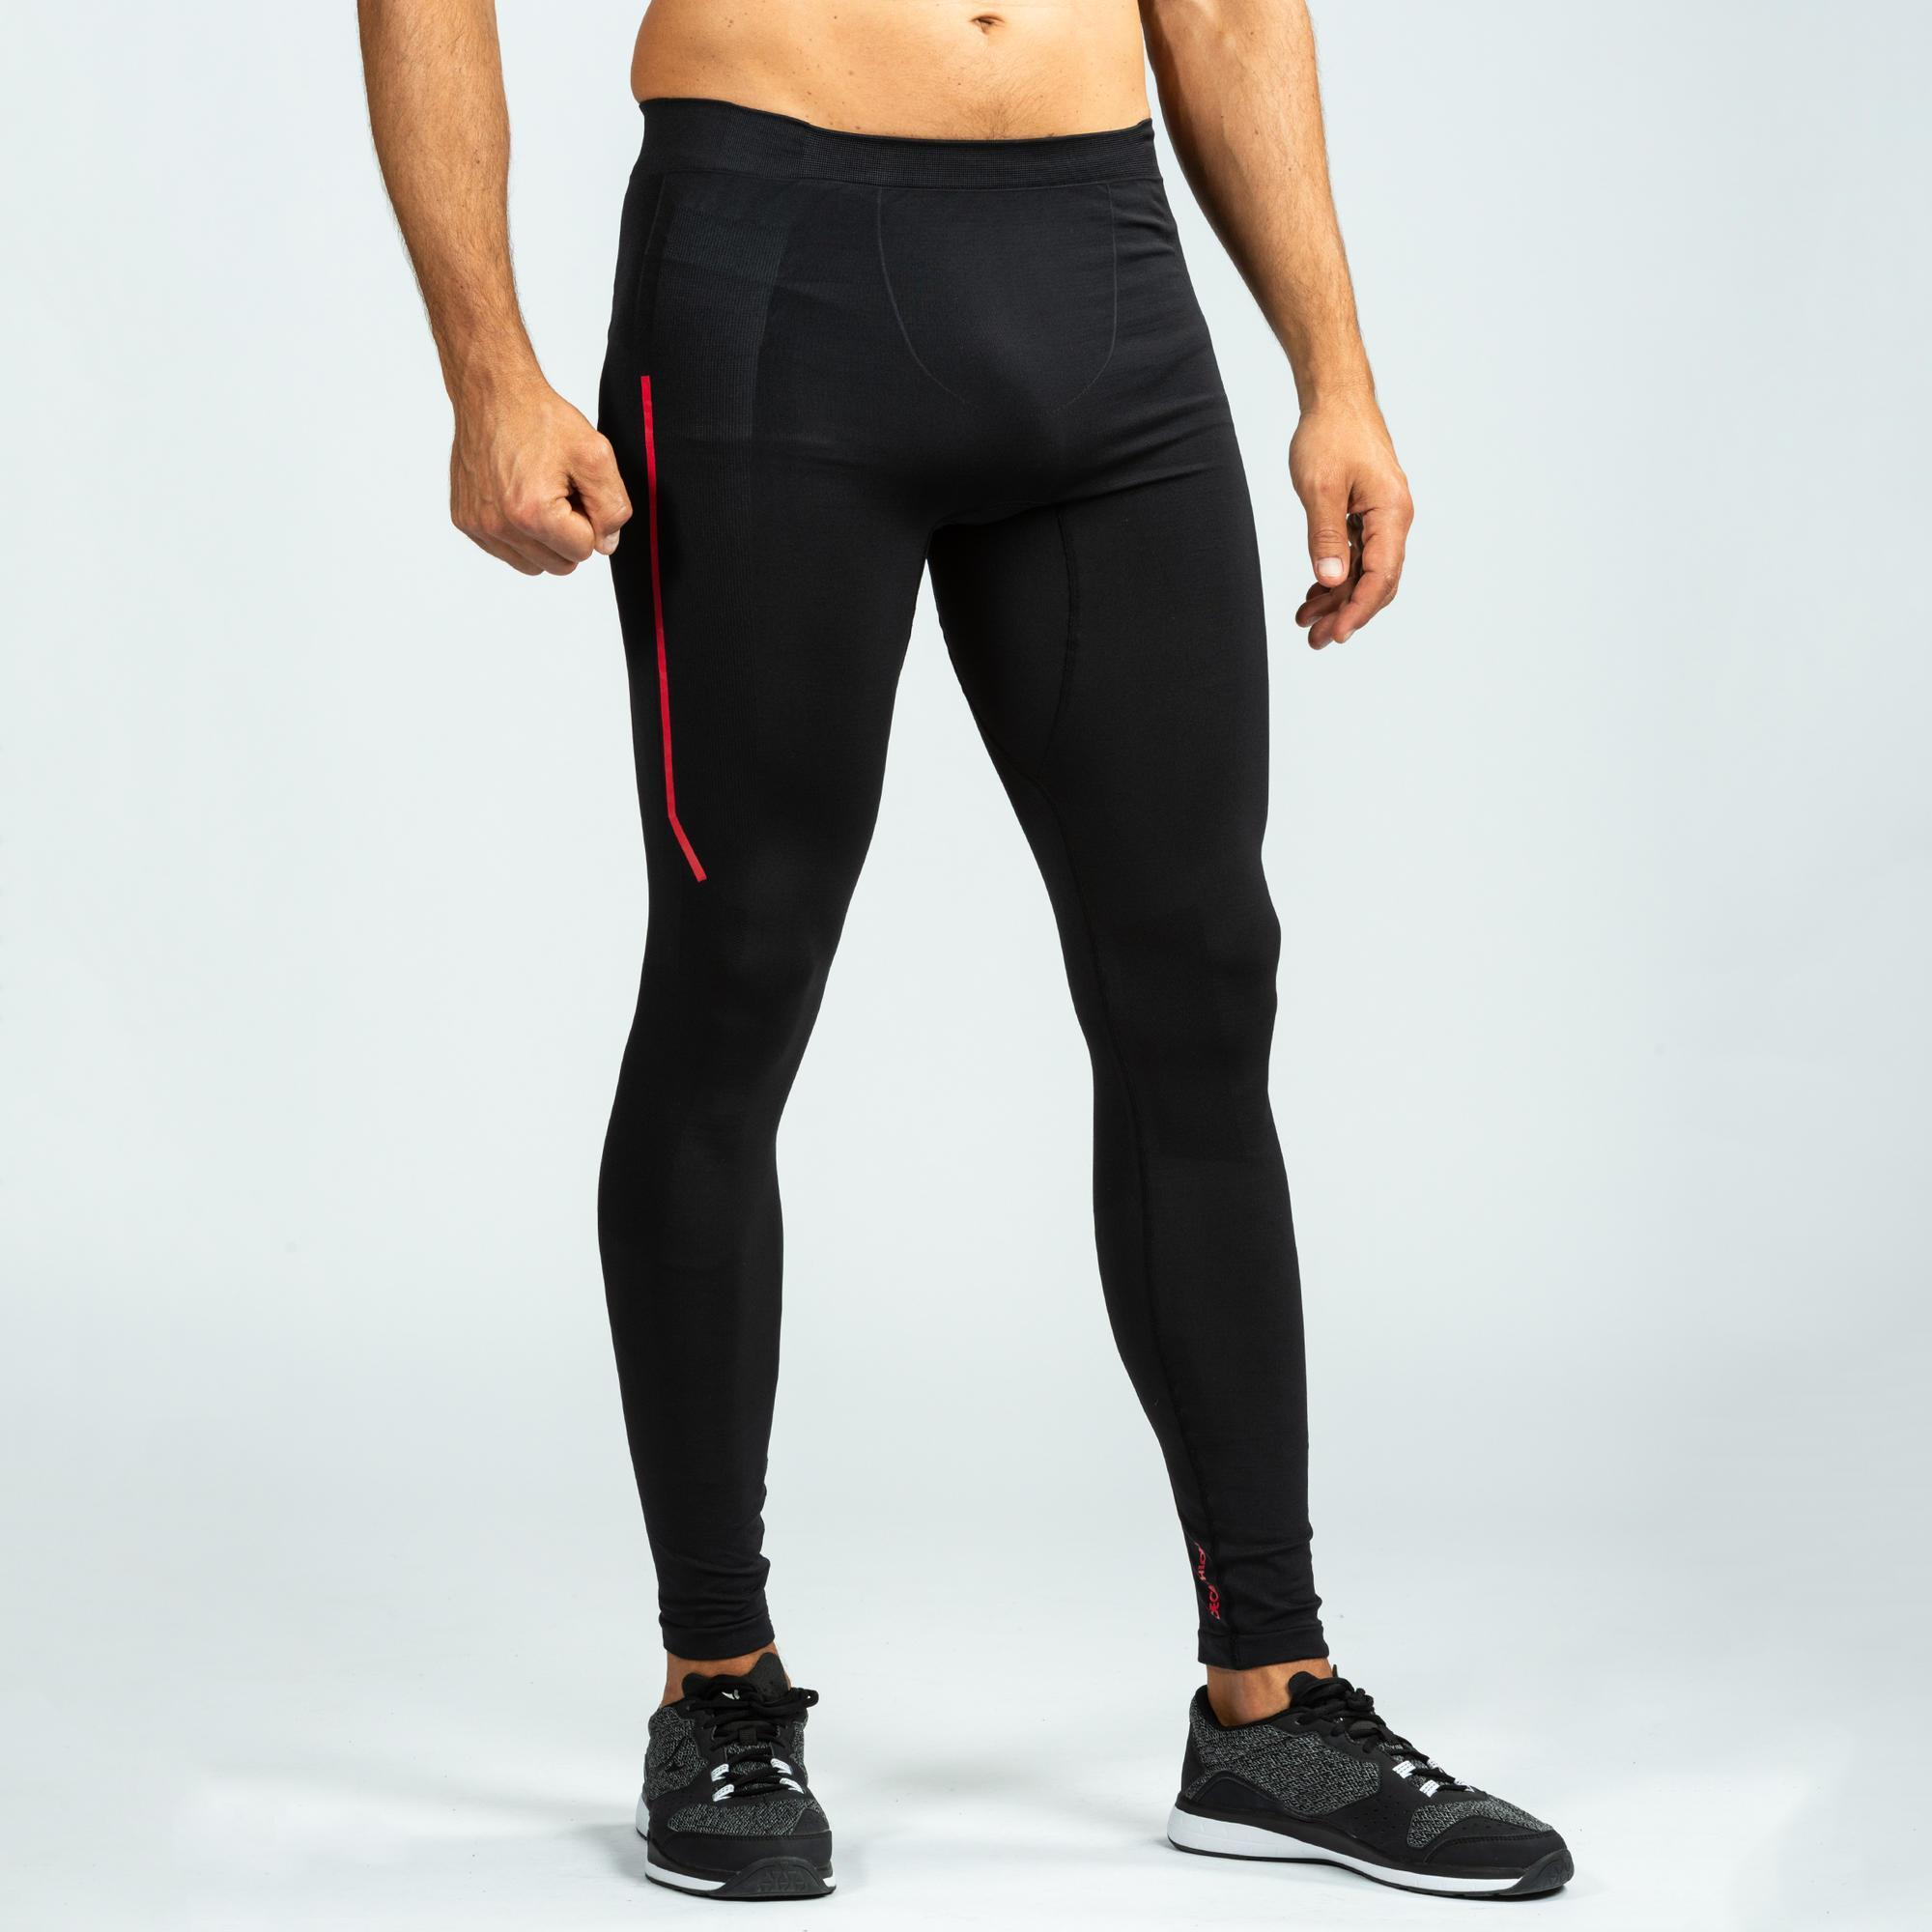 08d28a373869c 500 Cross-Training Leggings - Black/Red | Domyos by Decathlon